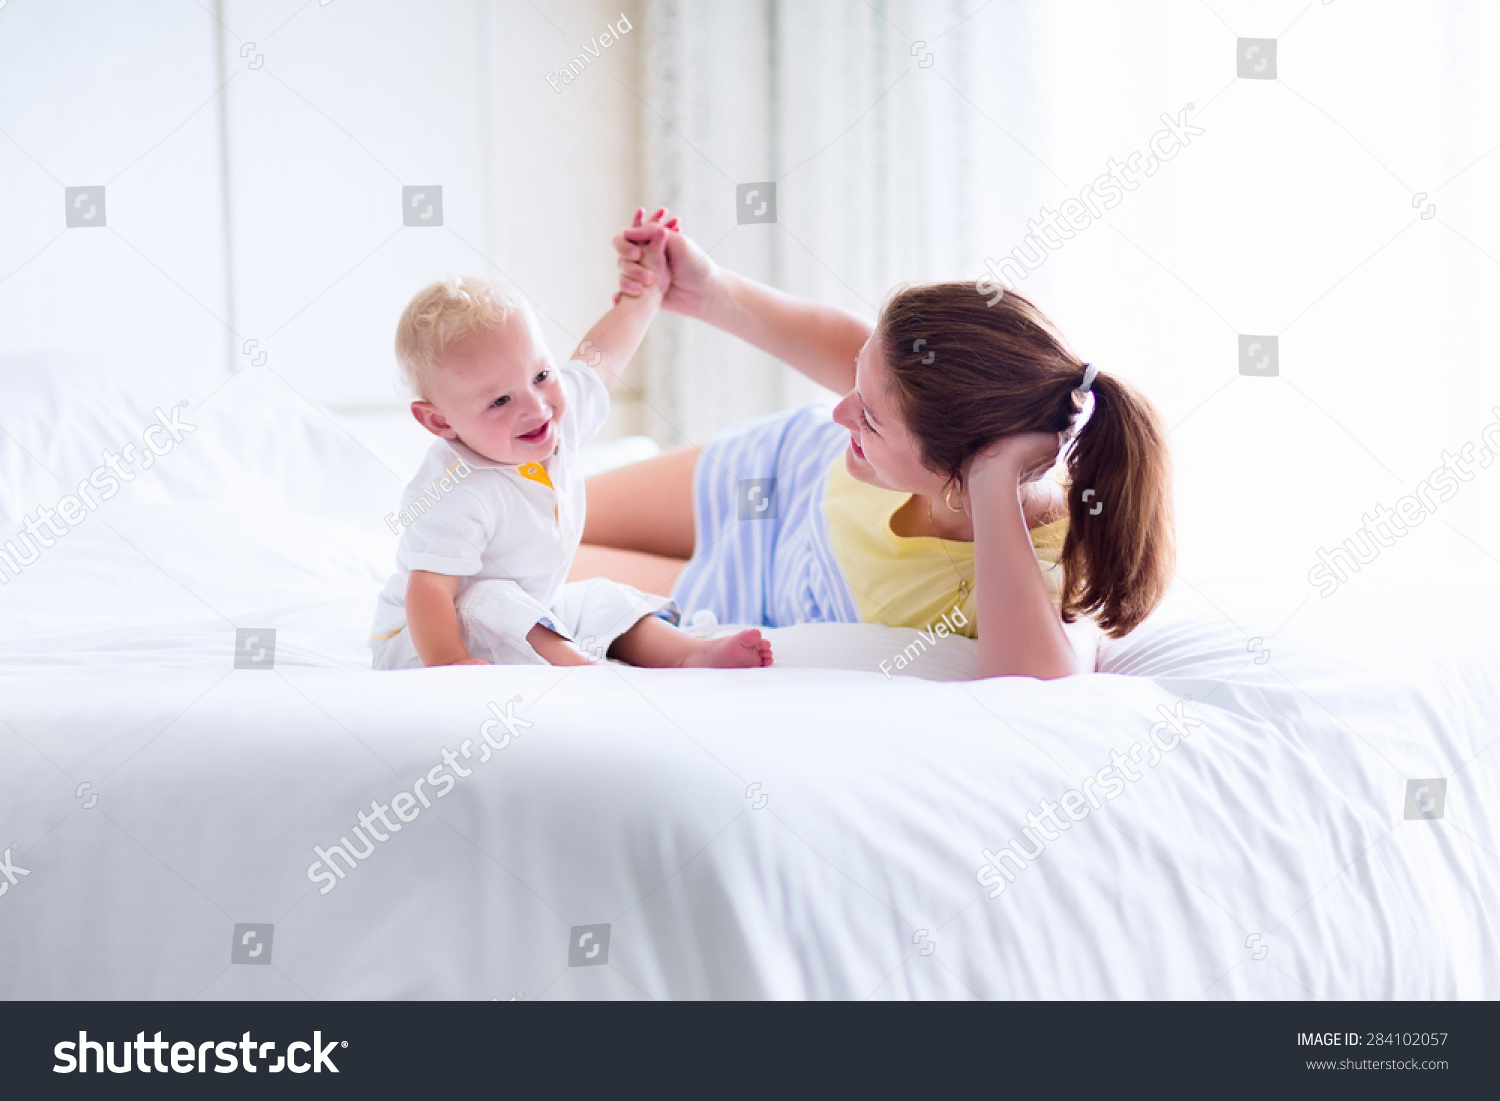 Baby bed next to mom - Mother And Baby In Bed Young Mom Playing With Her Newborn Son Child And